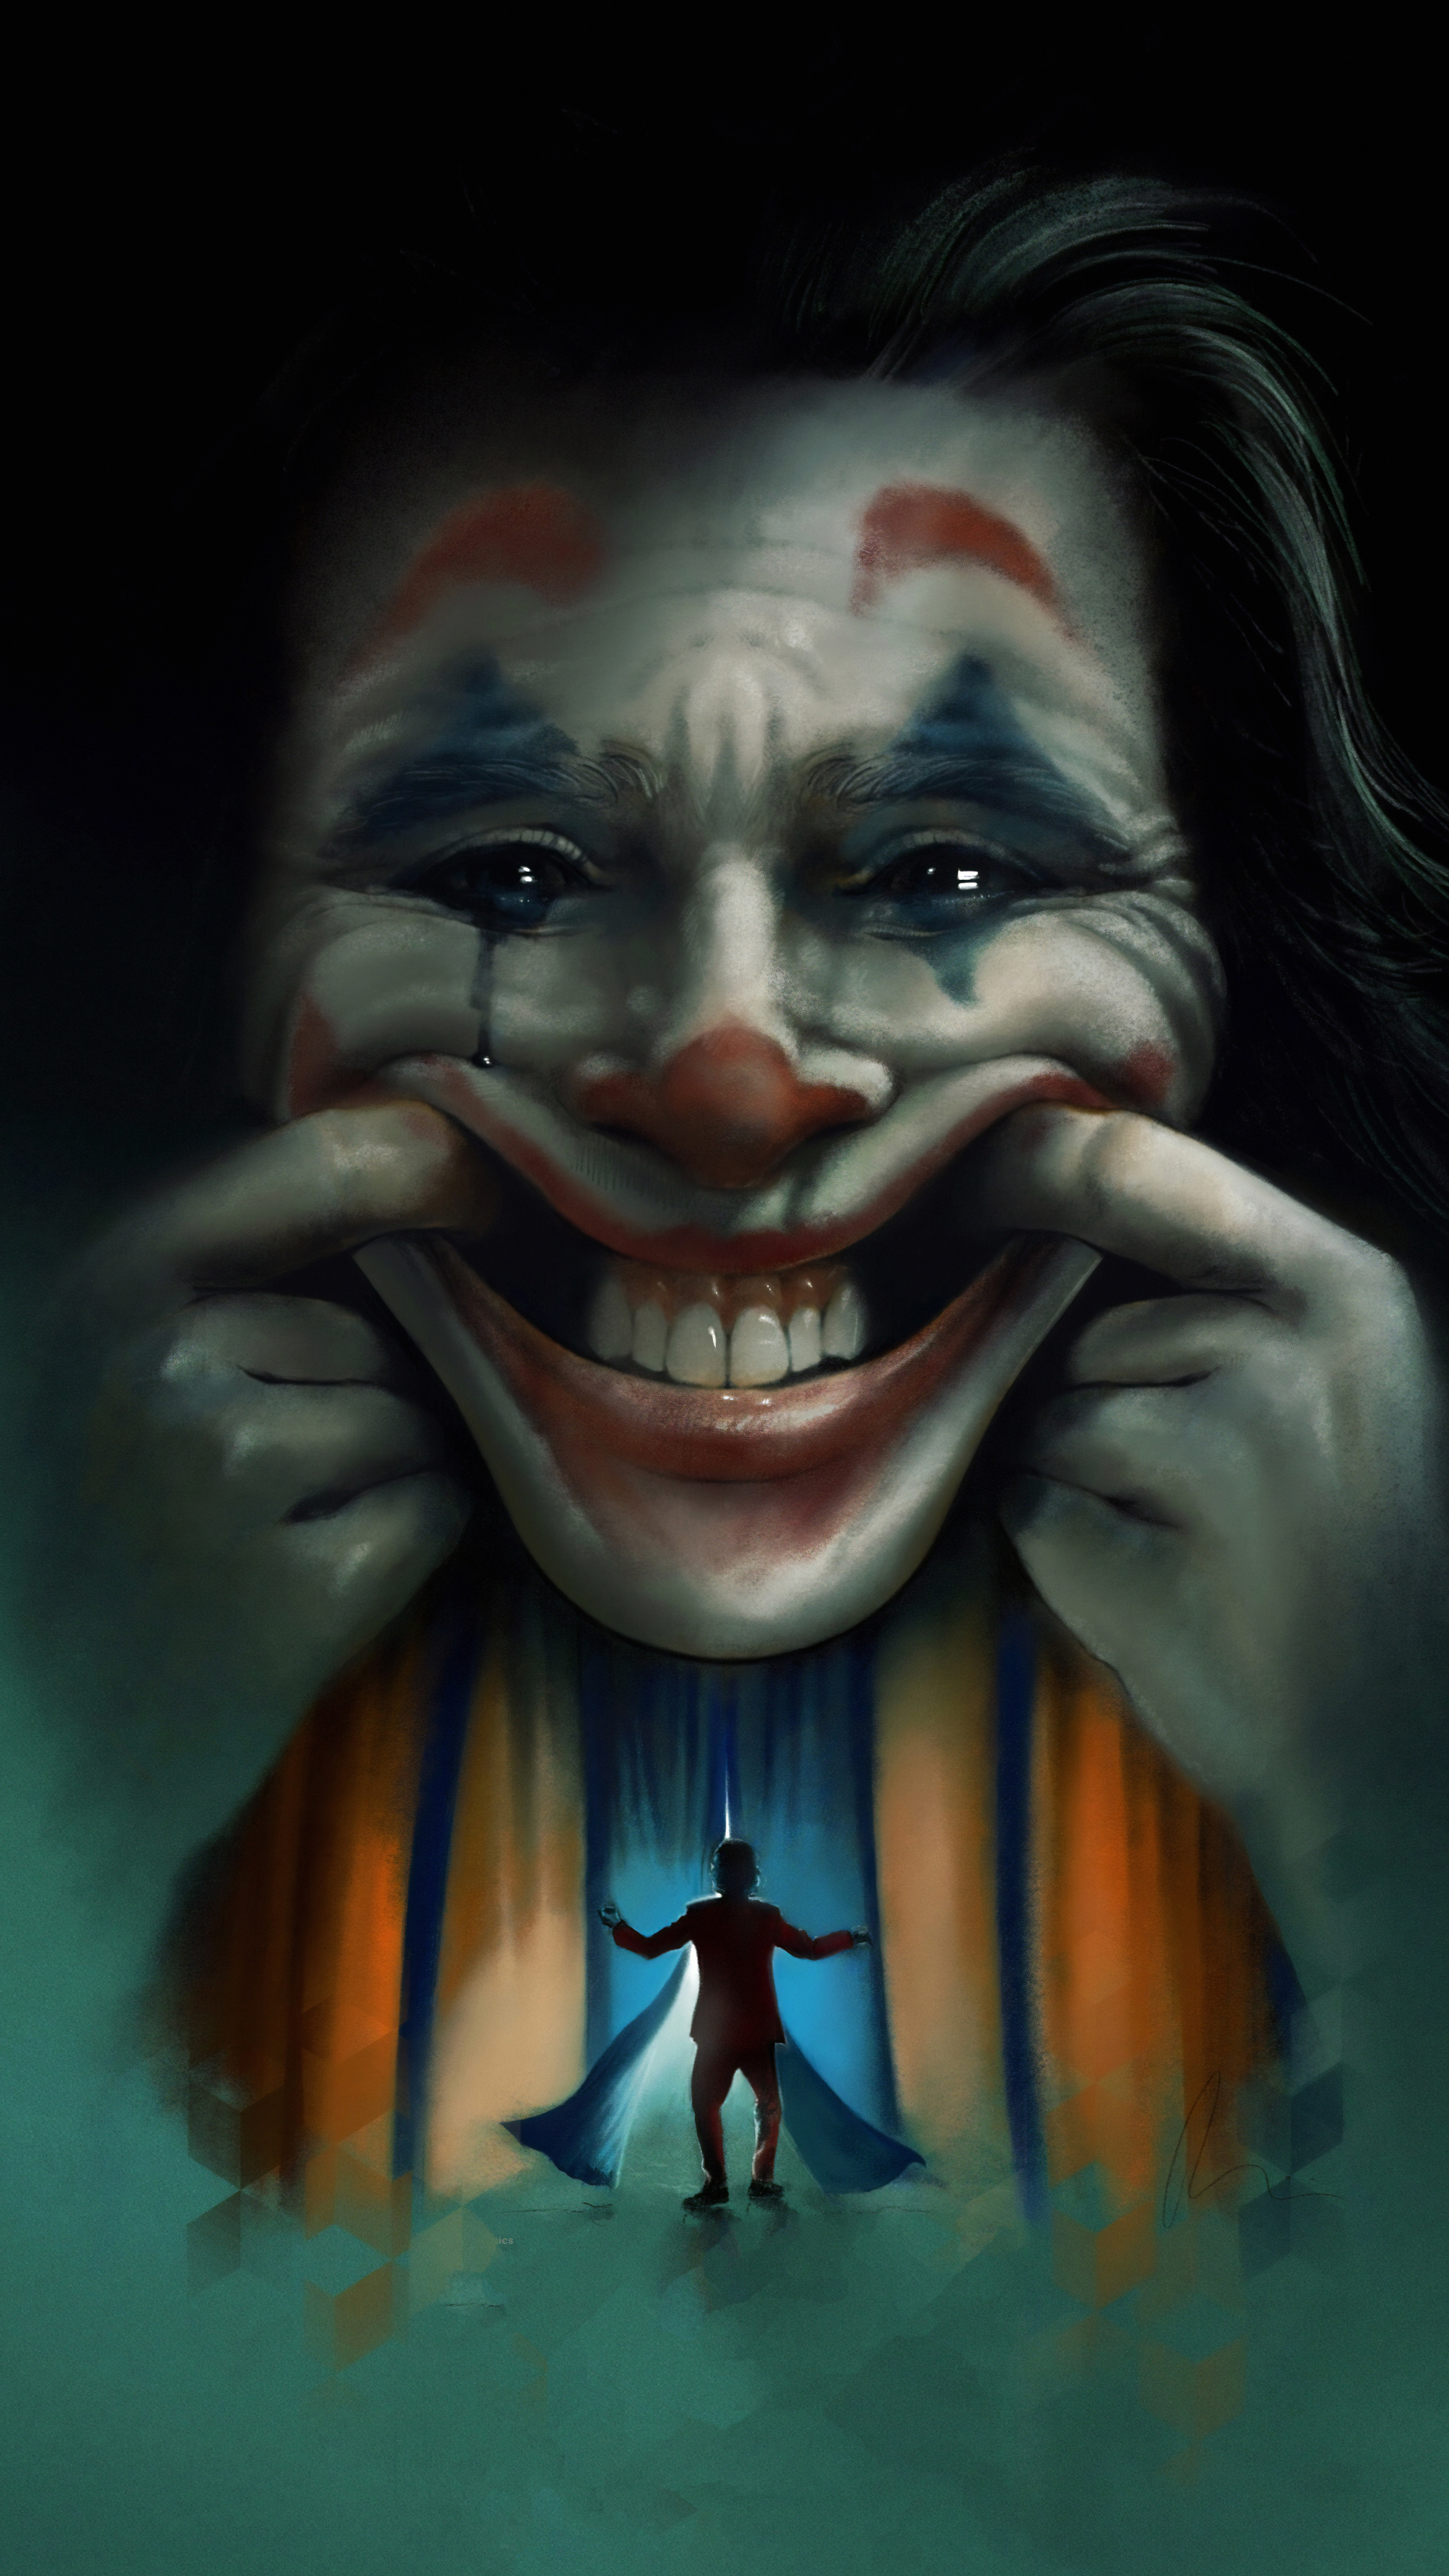 2160x3840 Joker Movie2019 Art Sony Xperia X,XZ,Z5 Premium ...